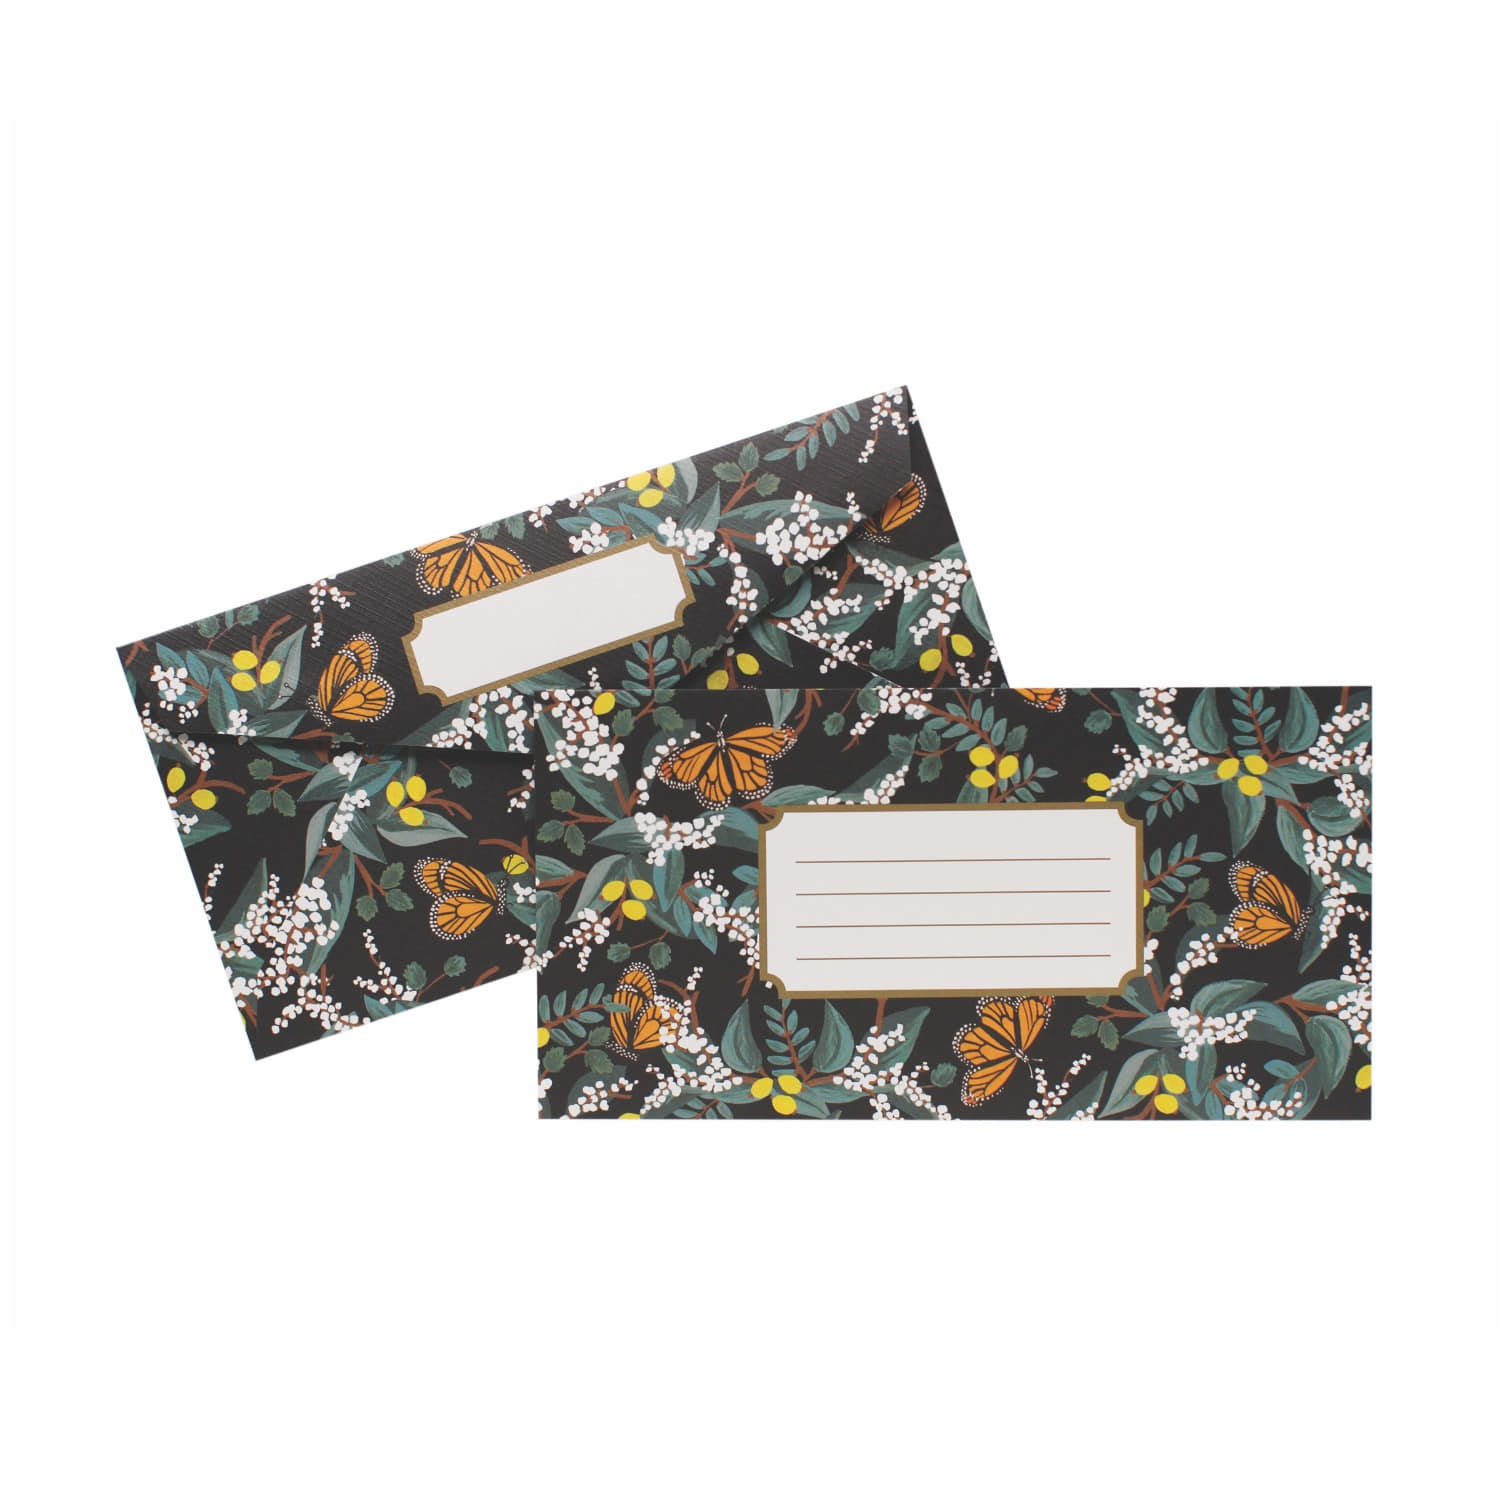 [Rifle Paper Co.] Monarch Envelope set of 5